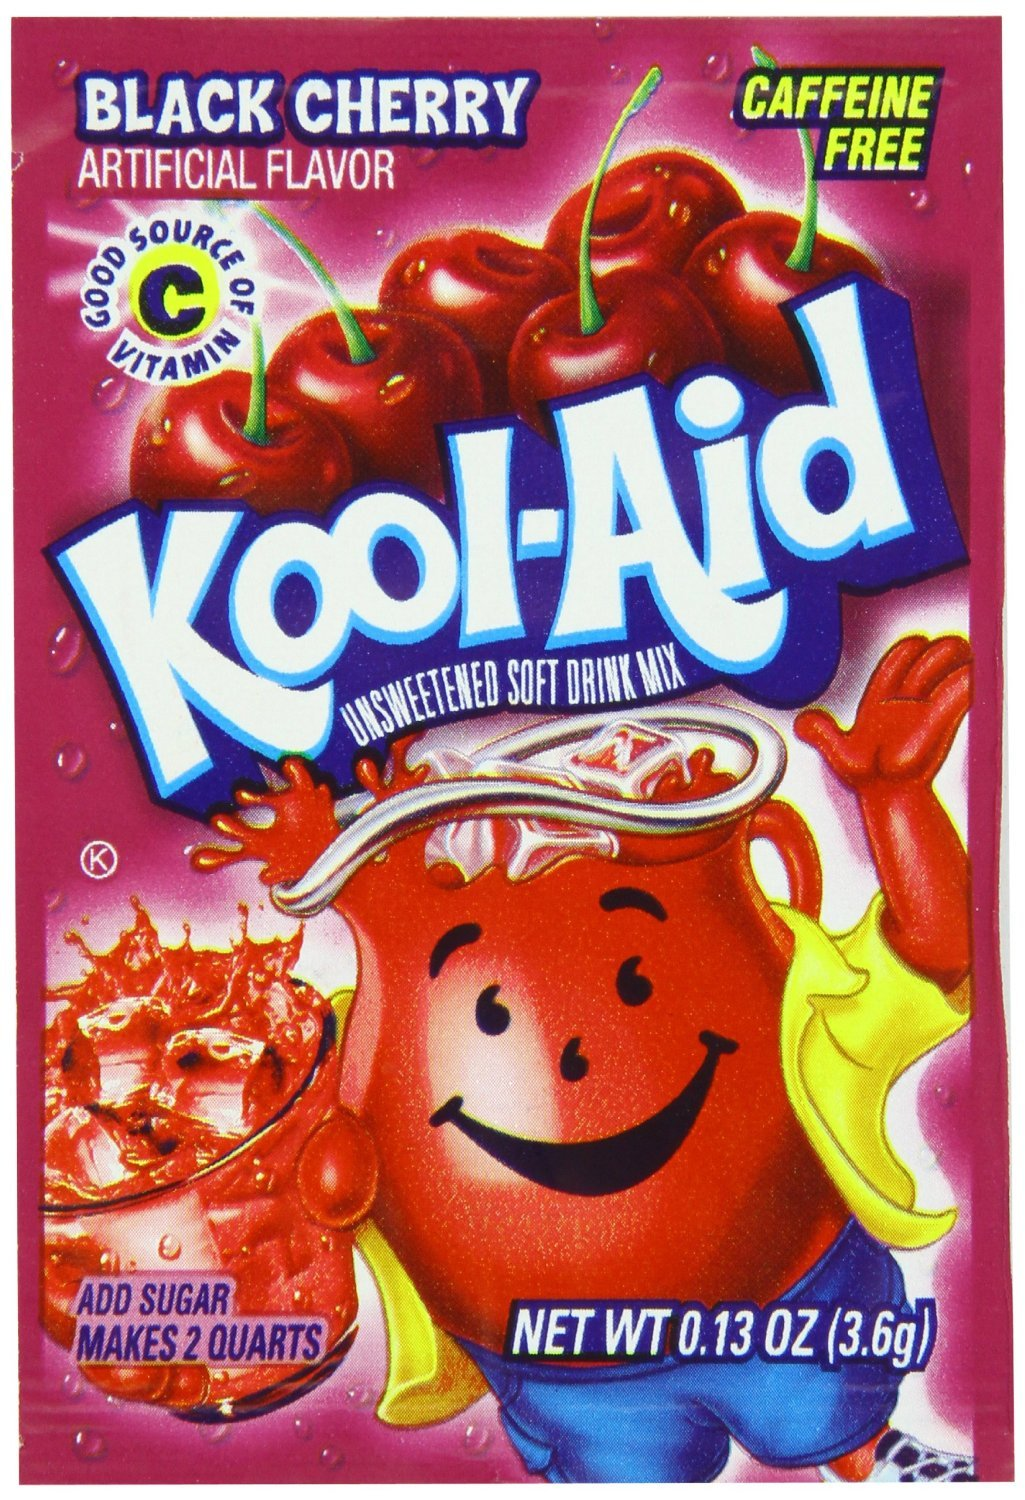 Kool-Aid Black Cherry Unsweetened Soft Drink Mix - 0.13 Ounce, 12 Pack